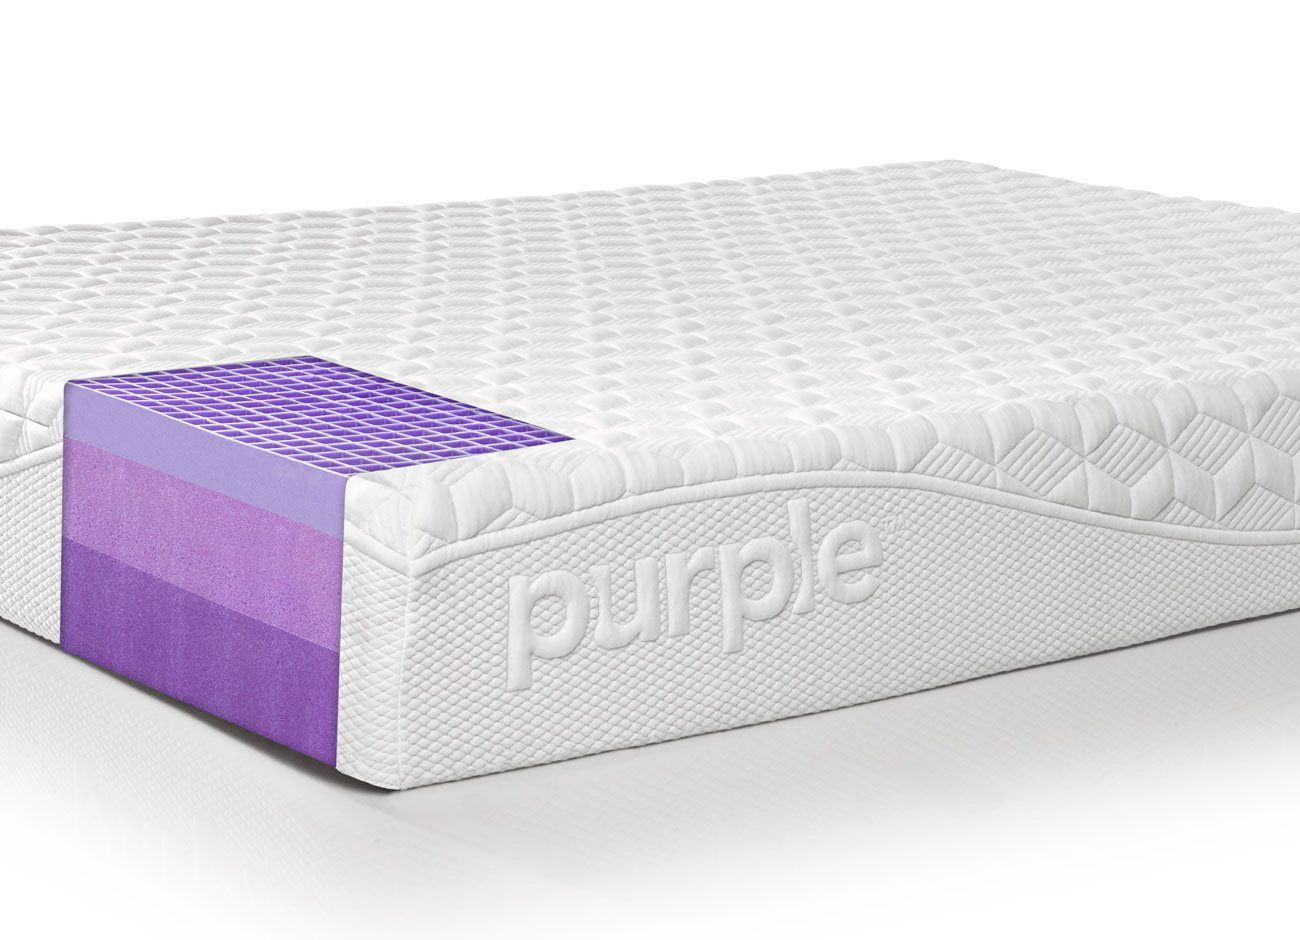 8 Best Mattresses For Side Sleepers Of 2019